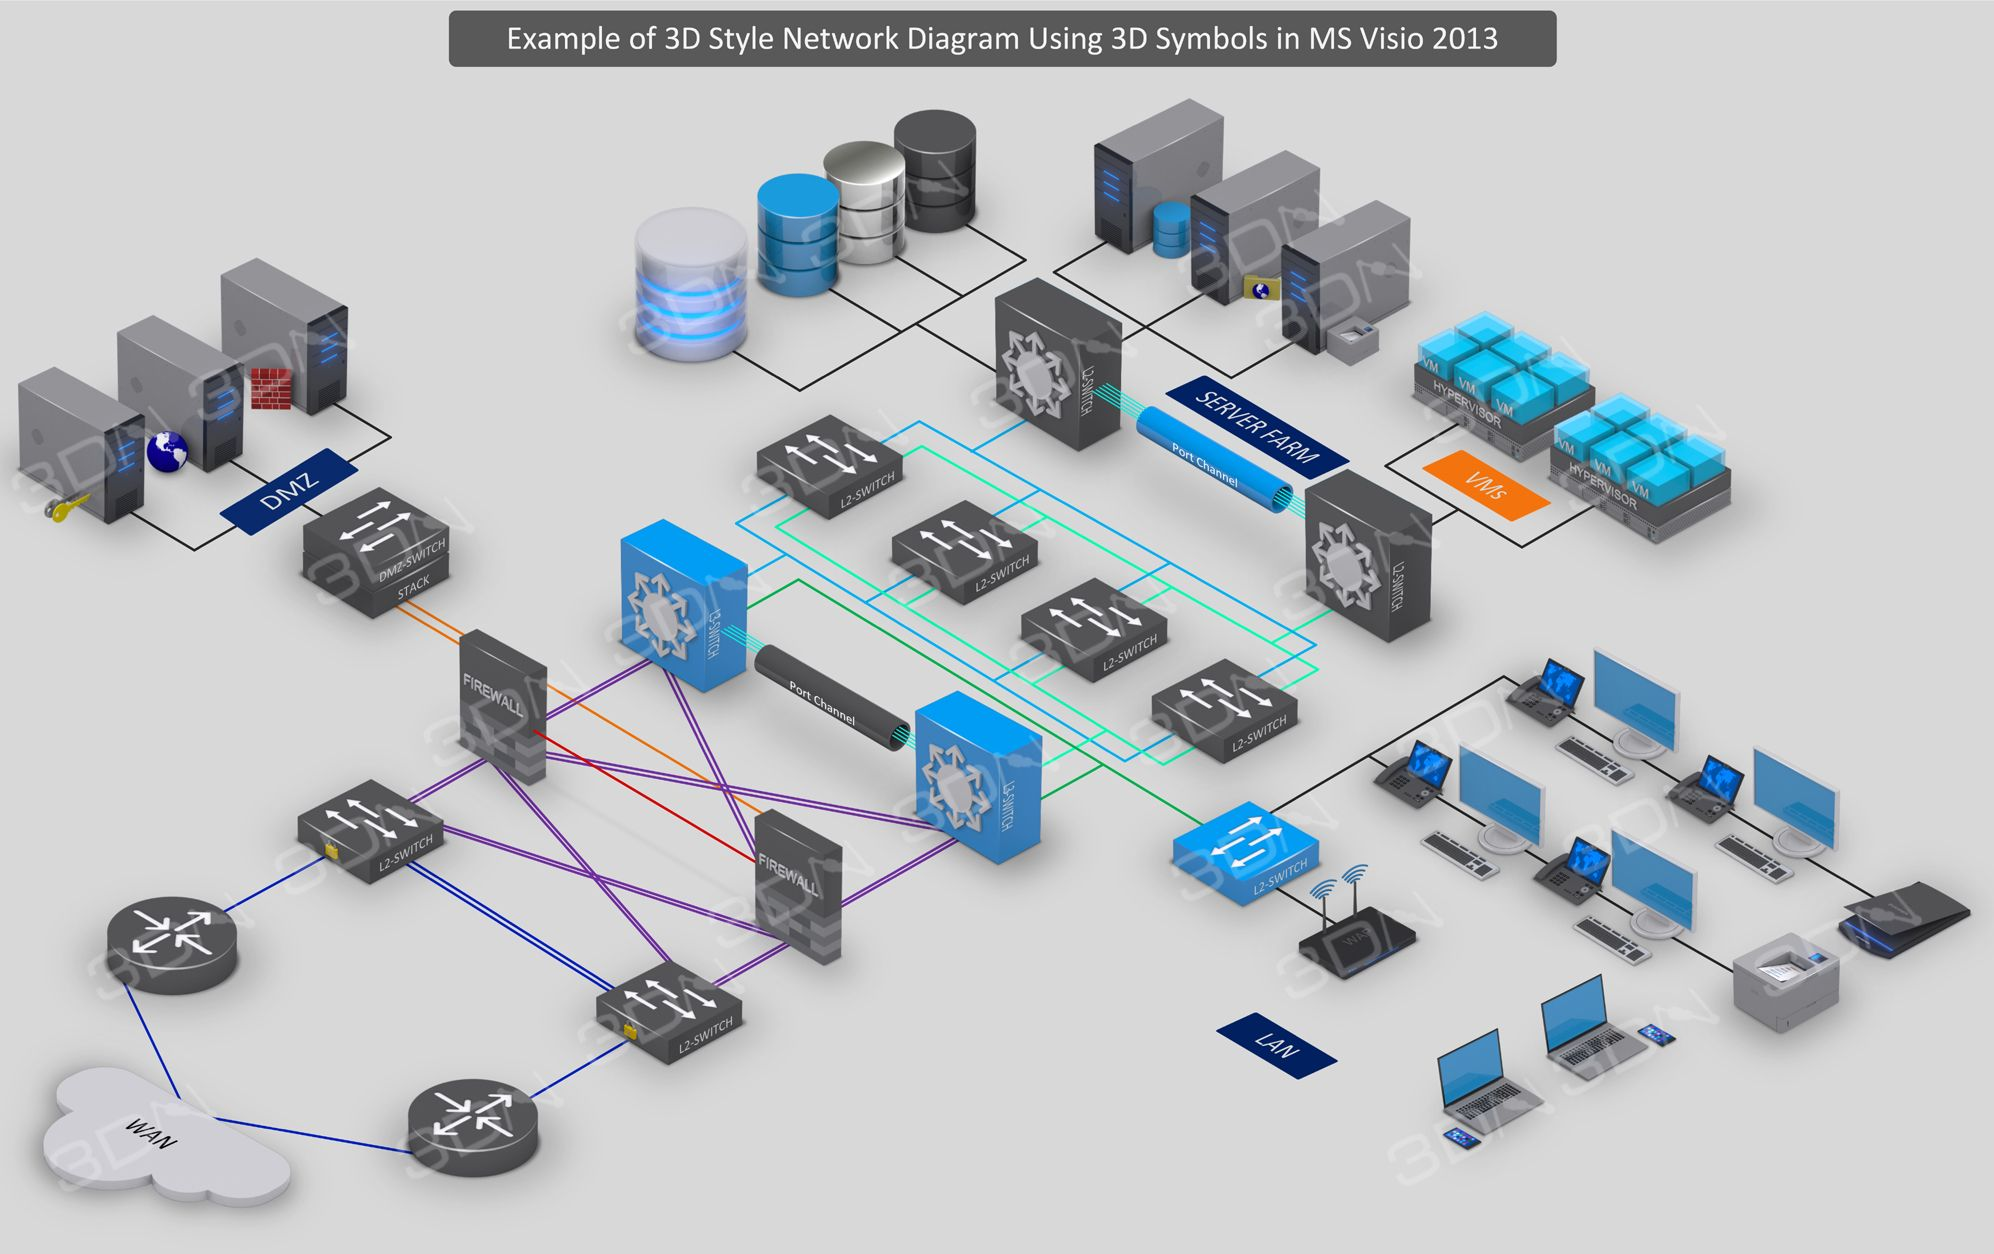 Pin By 3d Networking On 3d Network Diagram With 3d Network Symbols